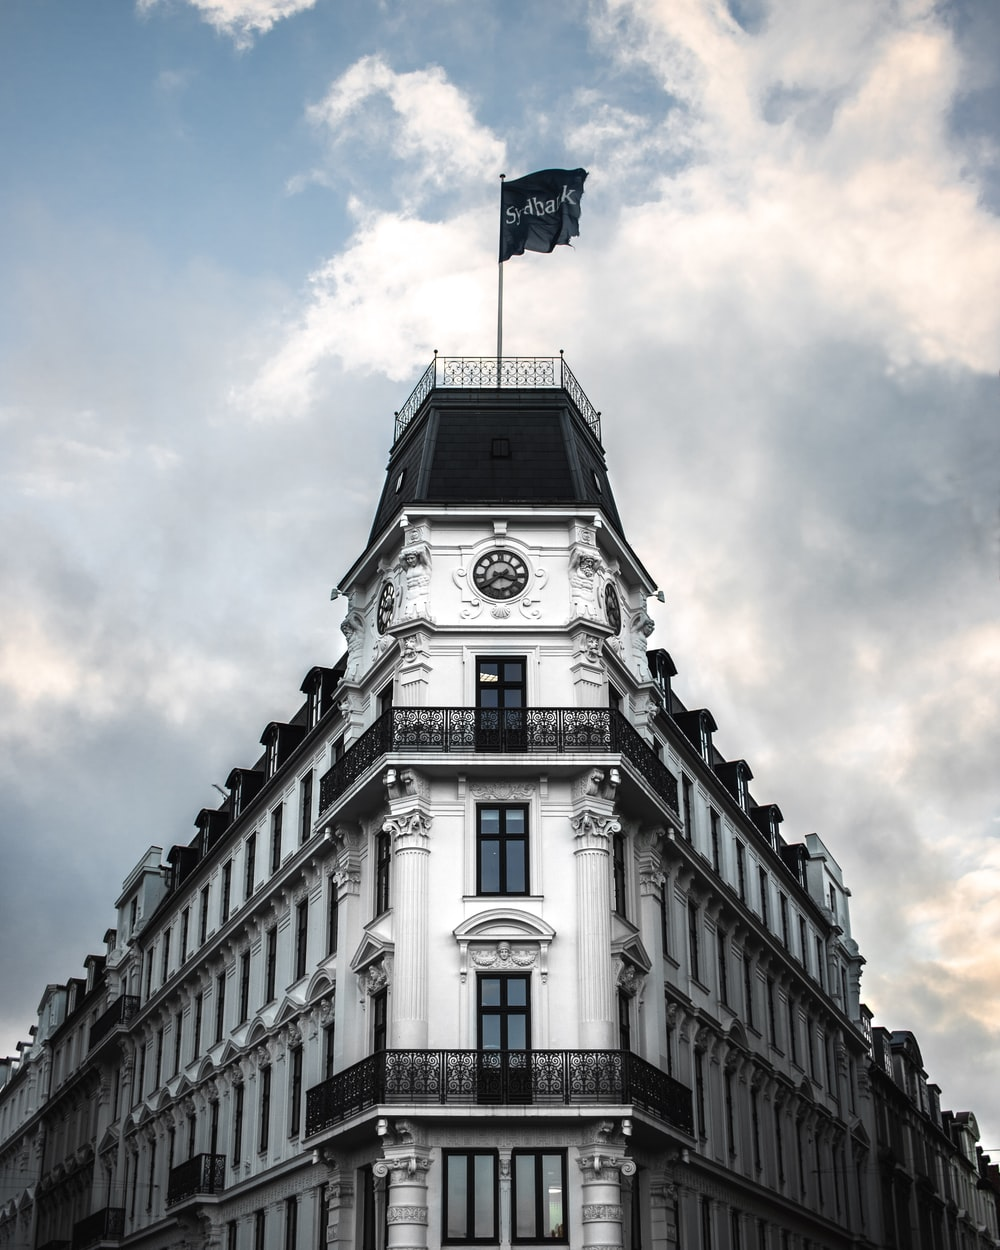 grayscale photography of castle with flag on top